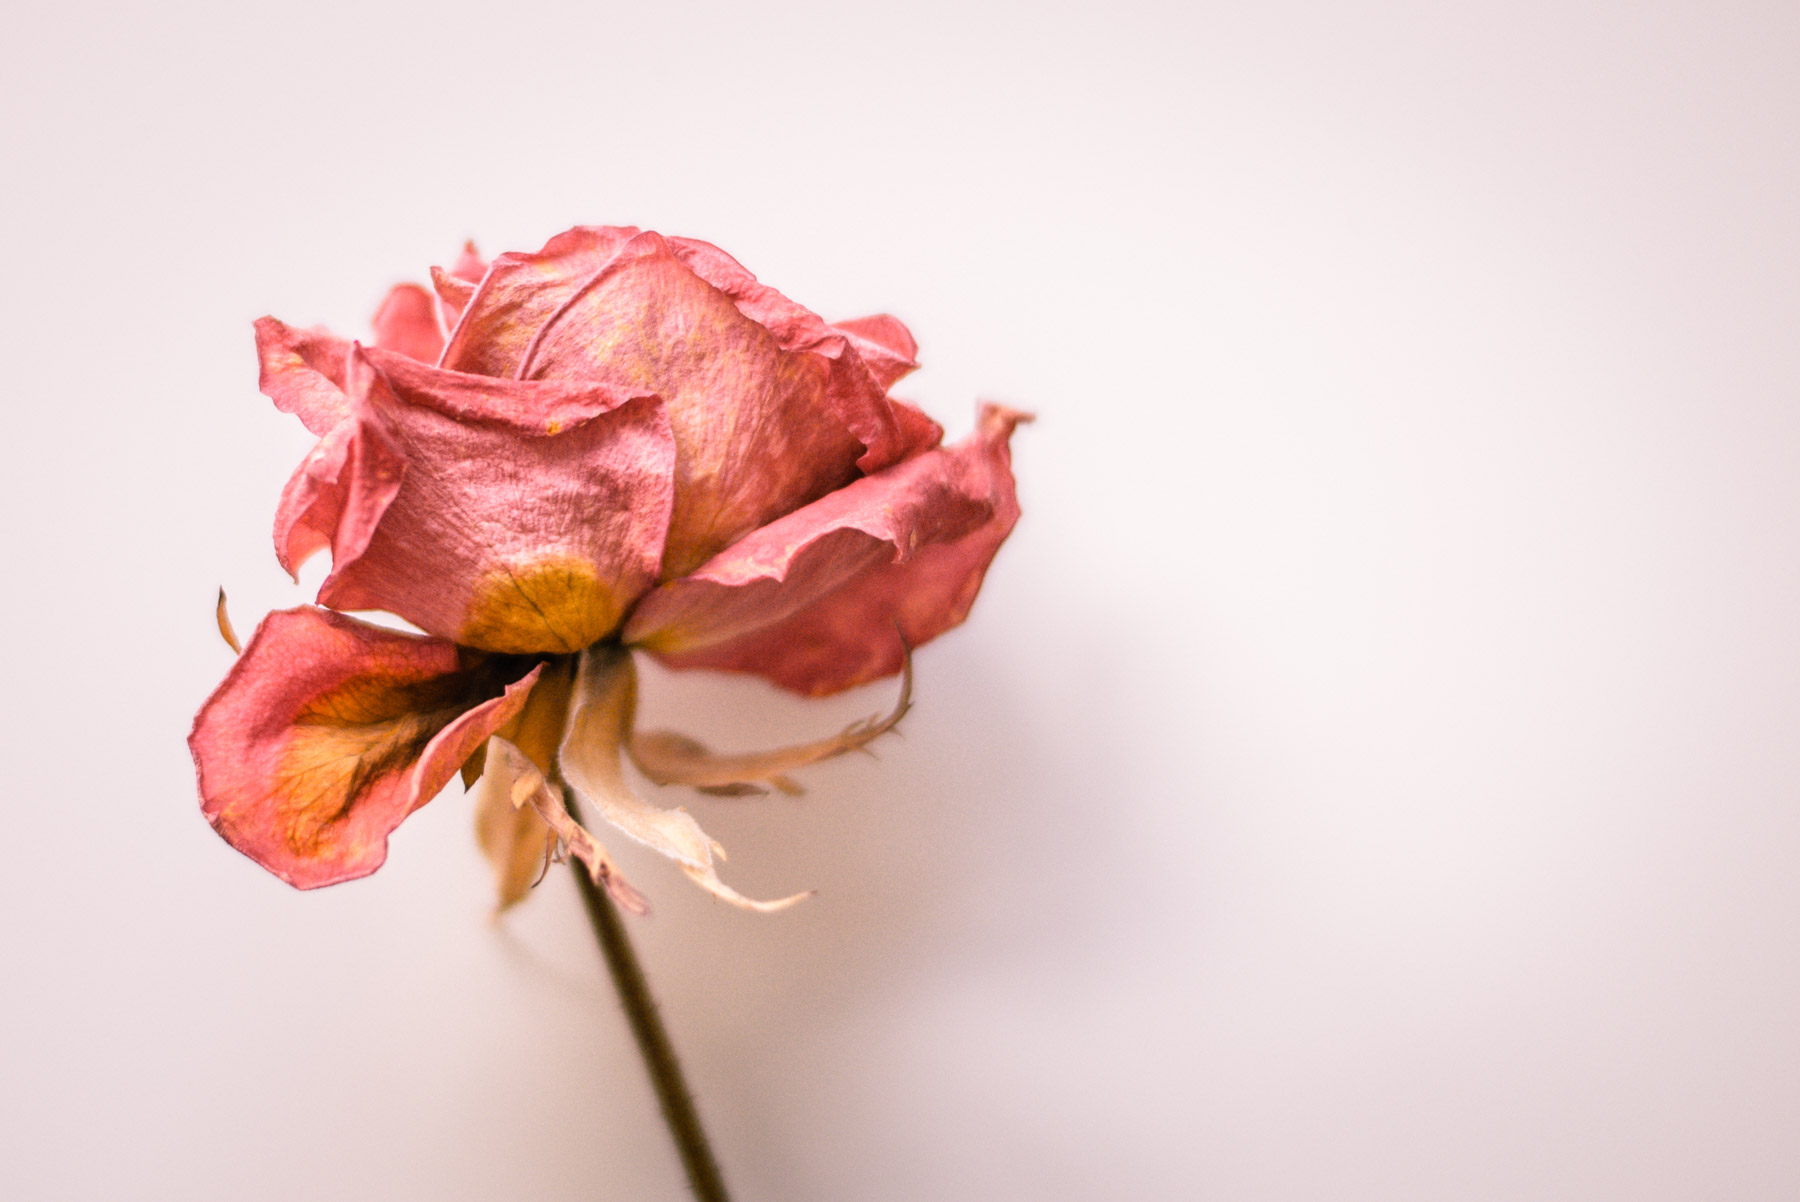 detail and close up of a dried flower, a pink rose